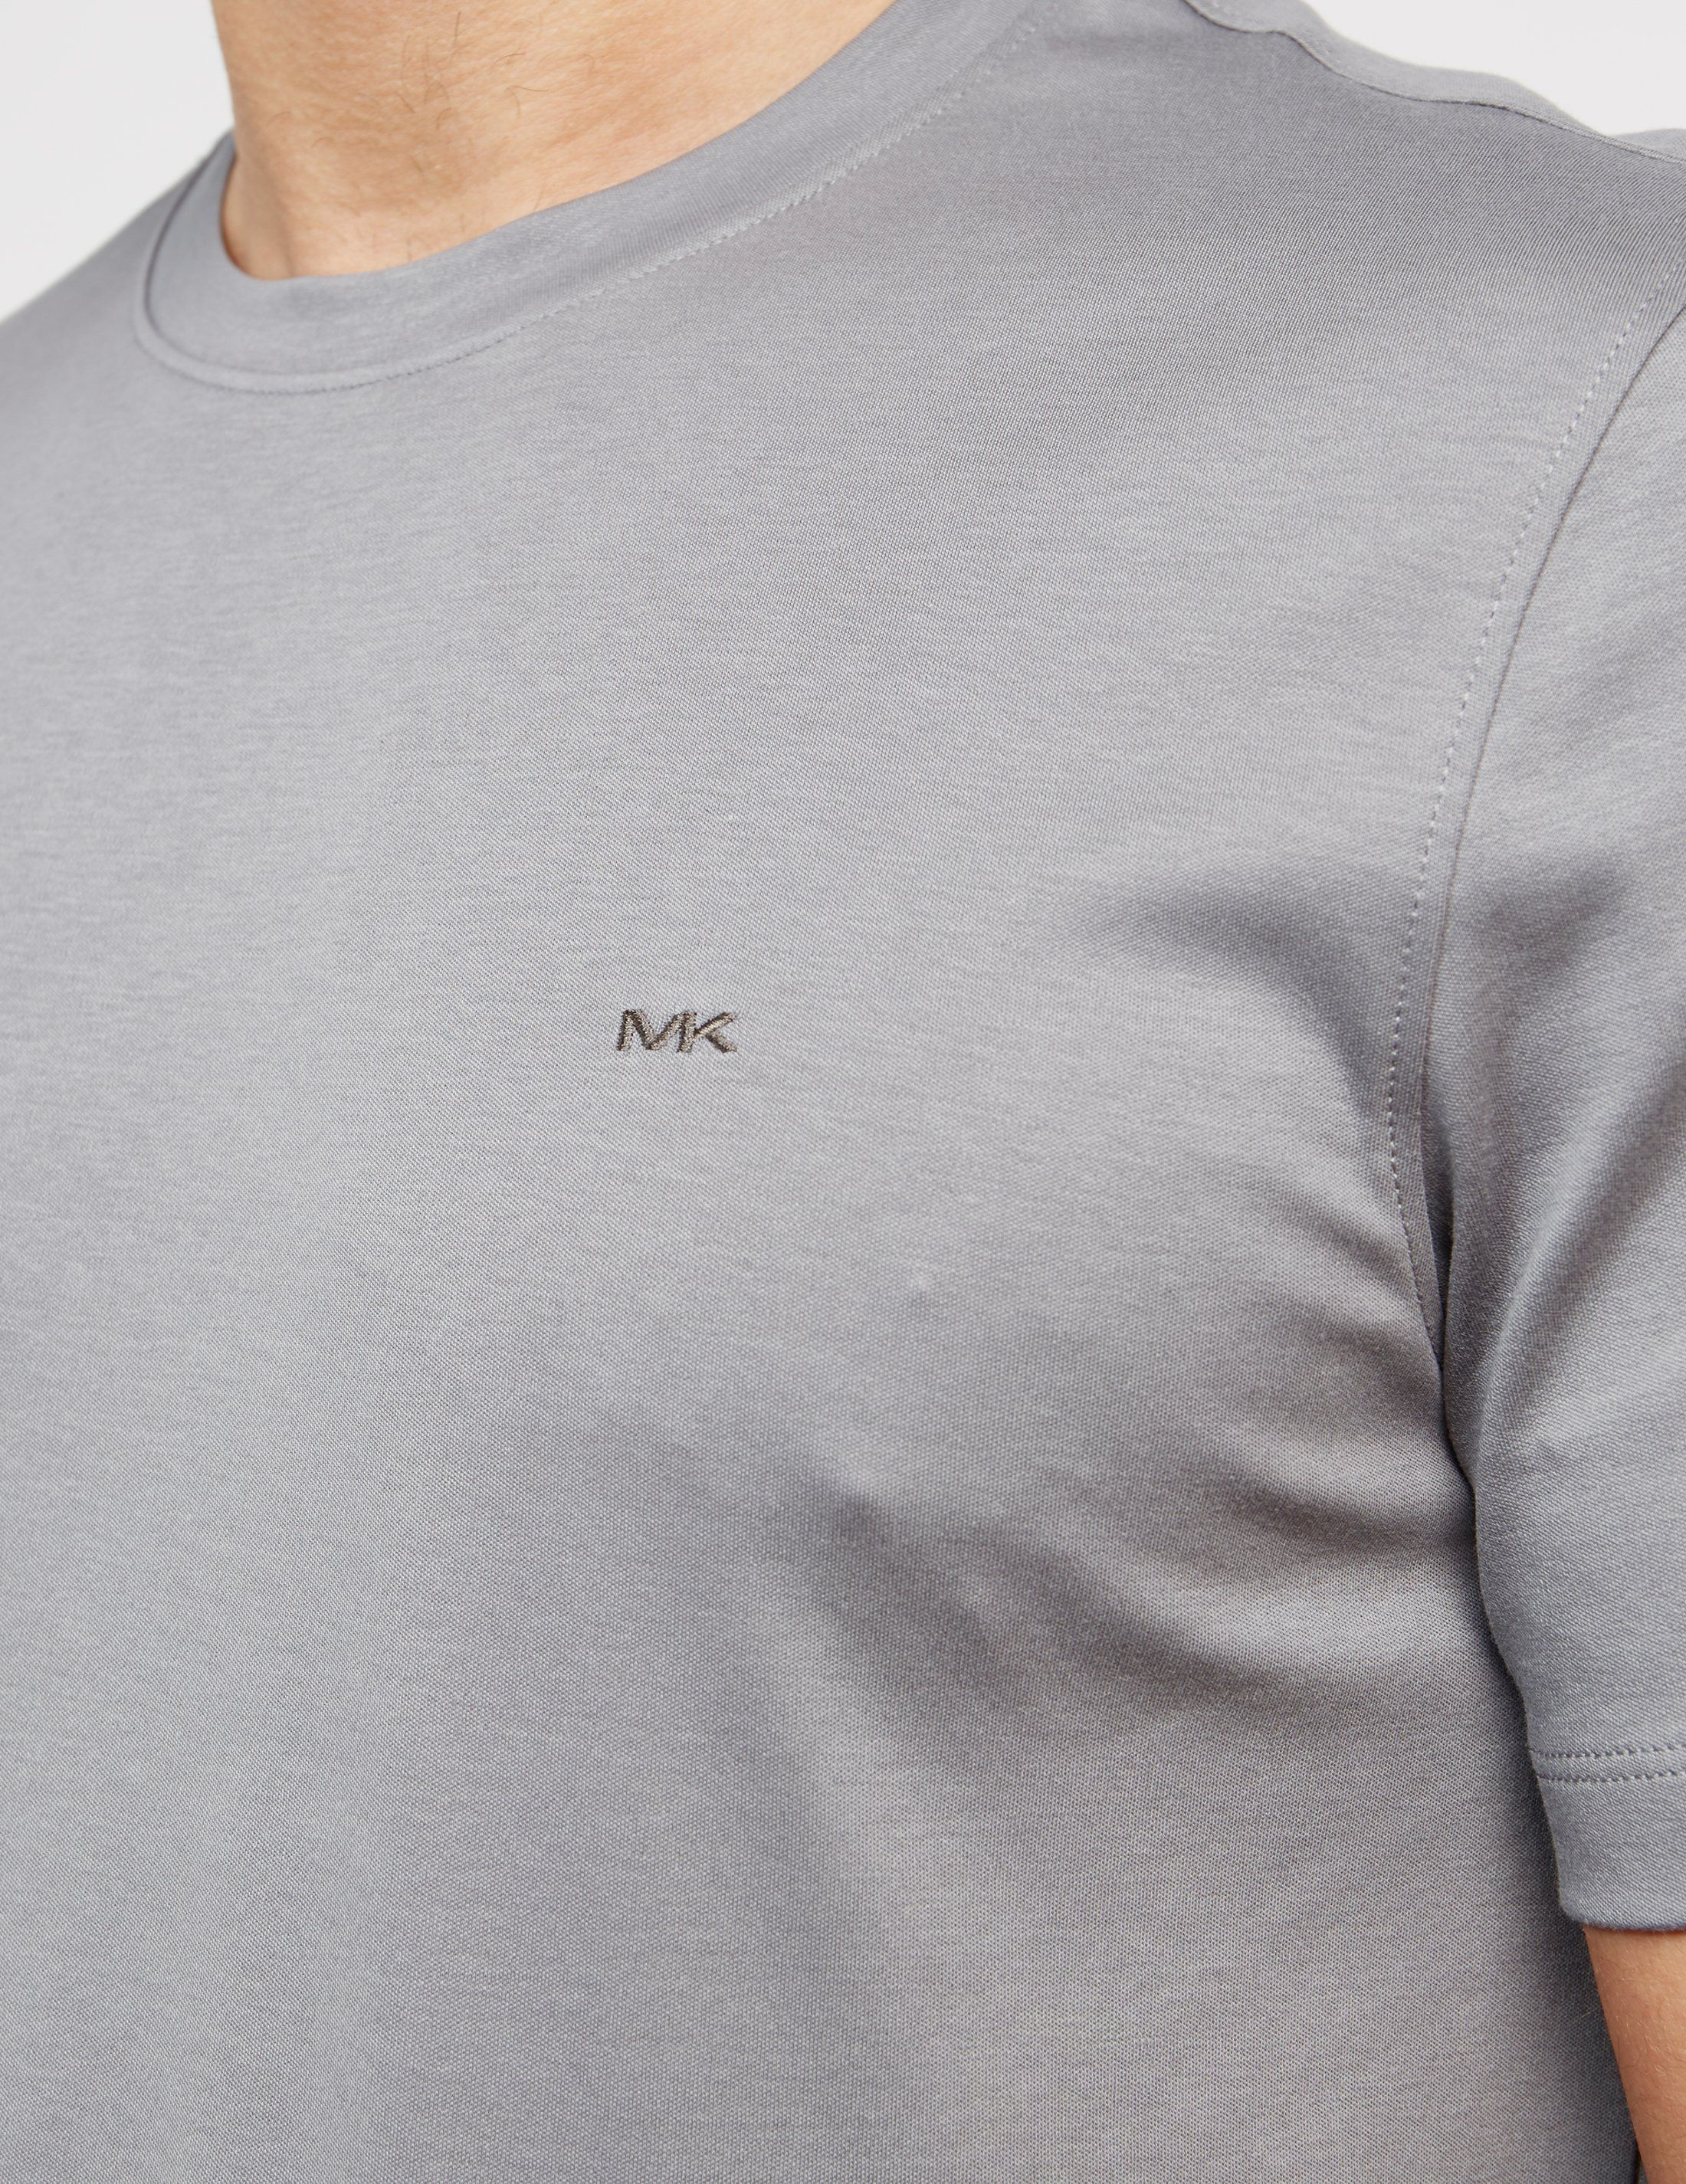 Michael Kors Sleek Short Sleeve T-Shirt